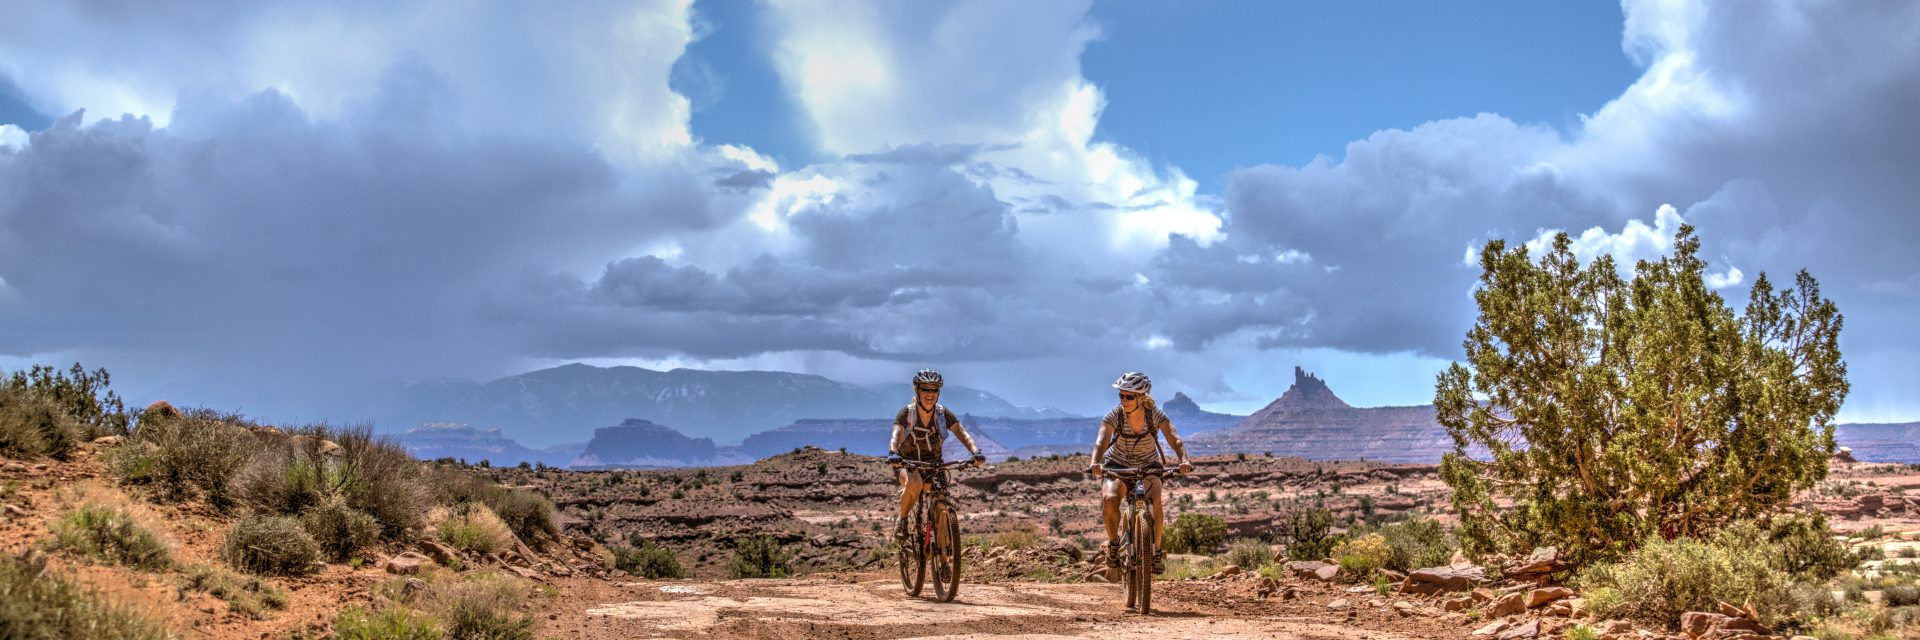 Two riders enjoy an early spring guided mountain bike tour on the Lockhart Basin Road from the Needles to Moab as thunderheads build over the Abajo Mountains in the distance.